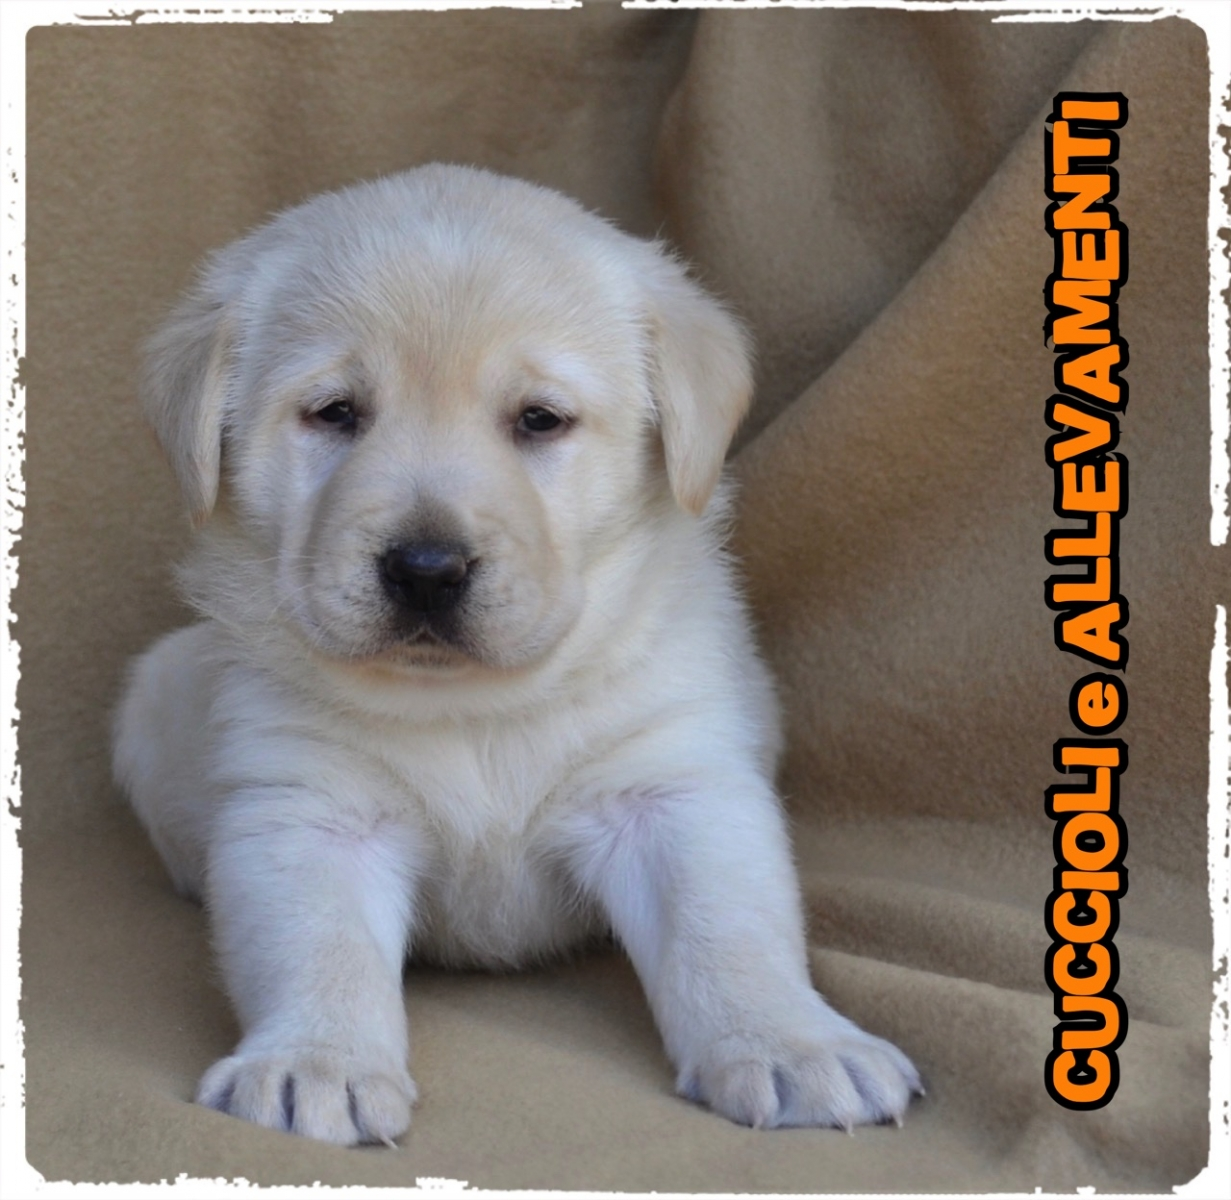 Labrador Retriever 21_wm